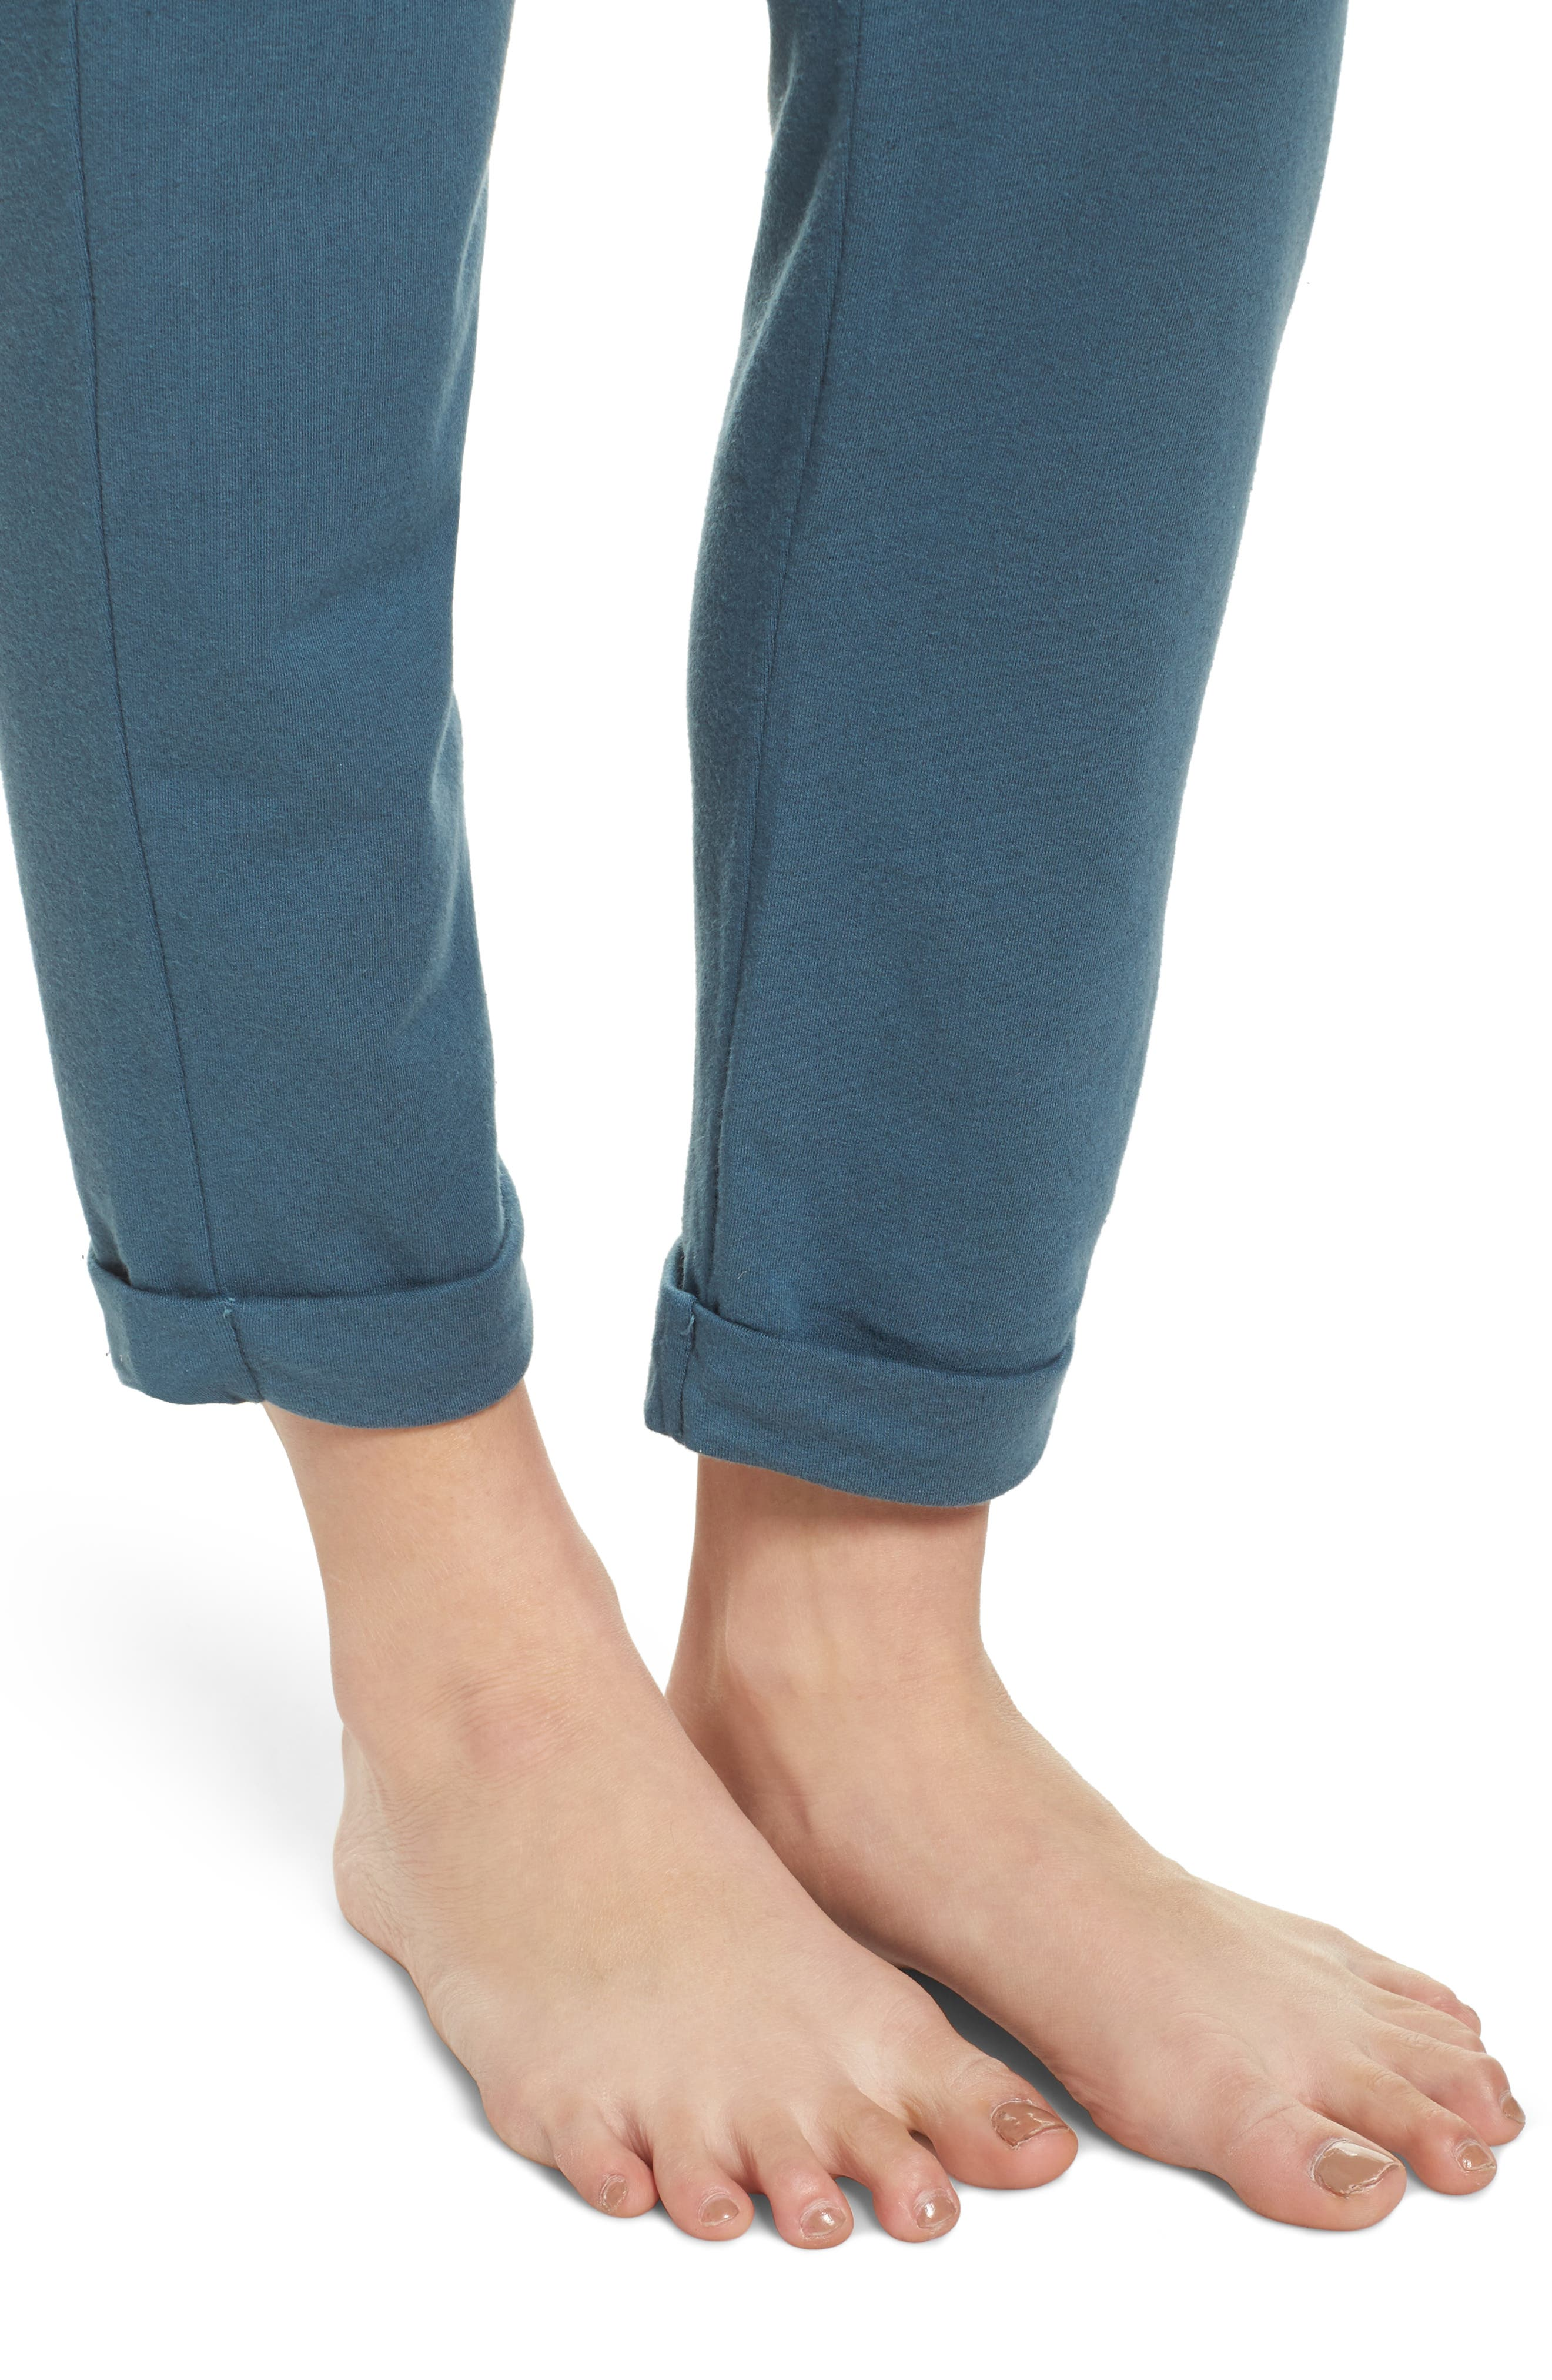 French Terry Sweatpants,                             Alternate thumbnail 5, color,                             Royal Teal